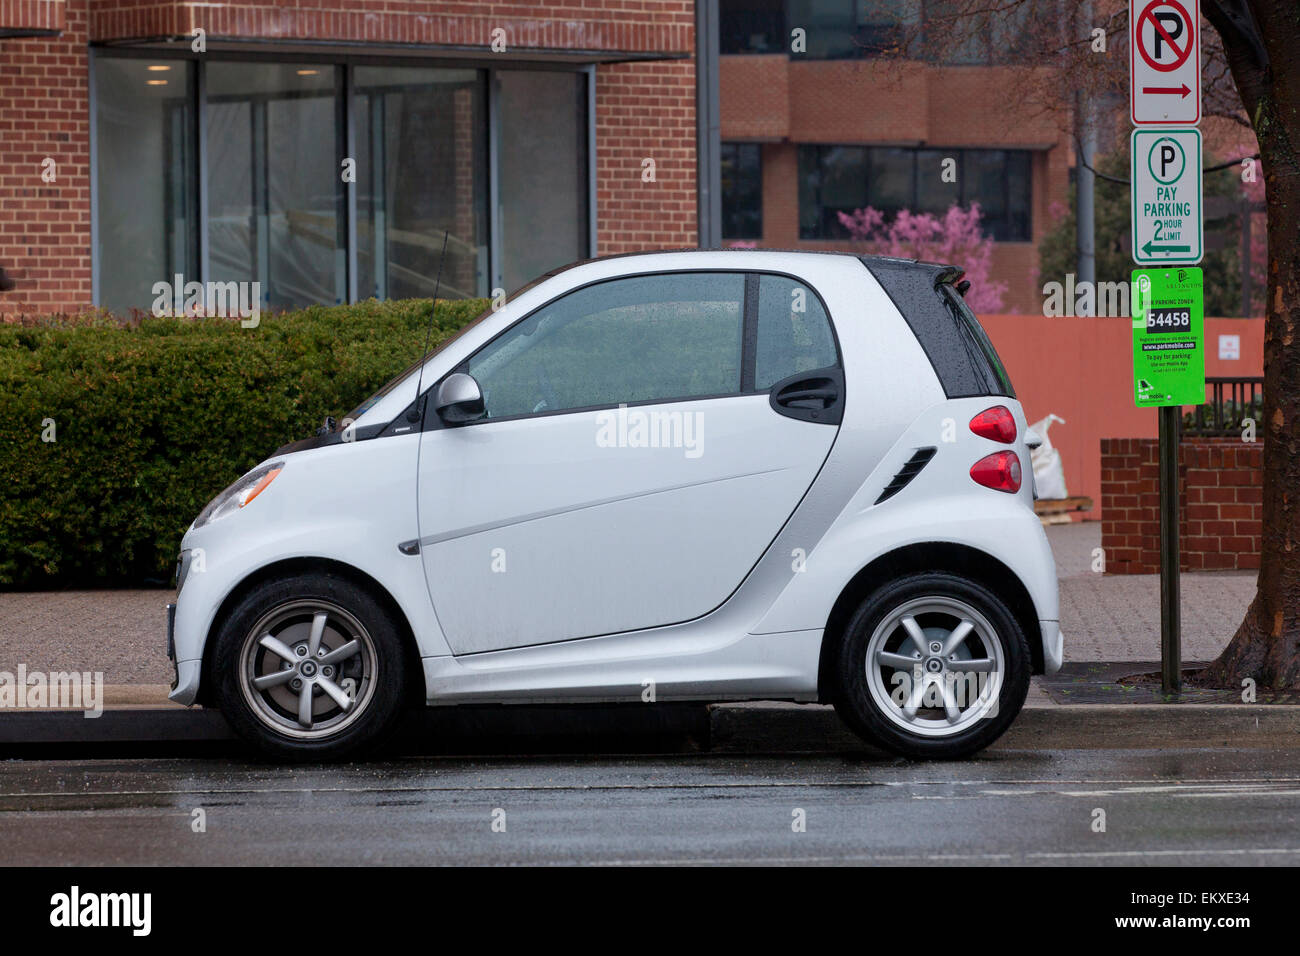 Smart Car side view - Stock Image